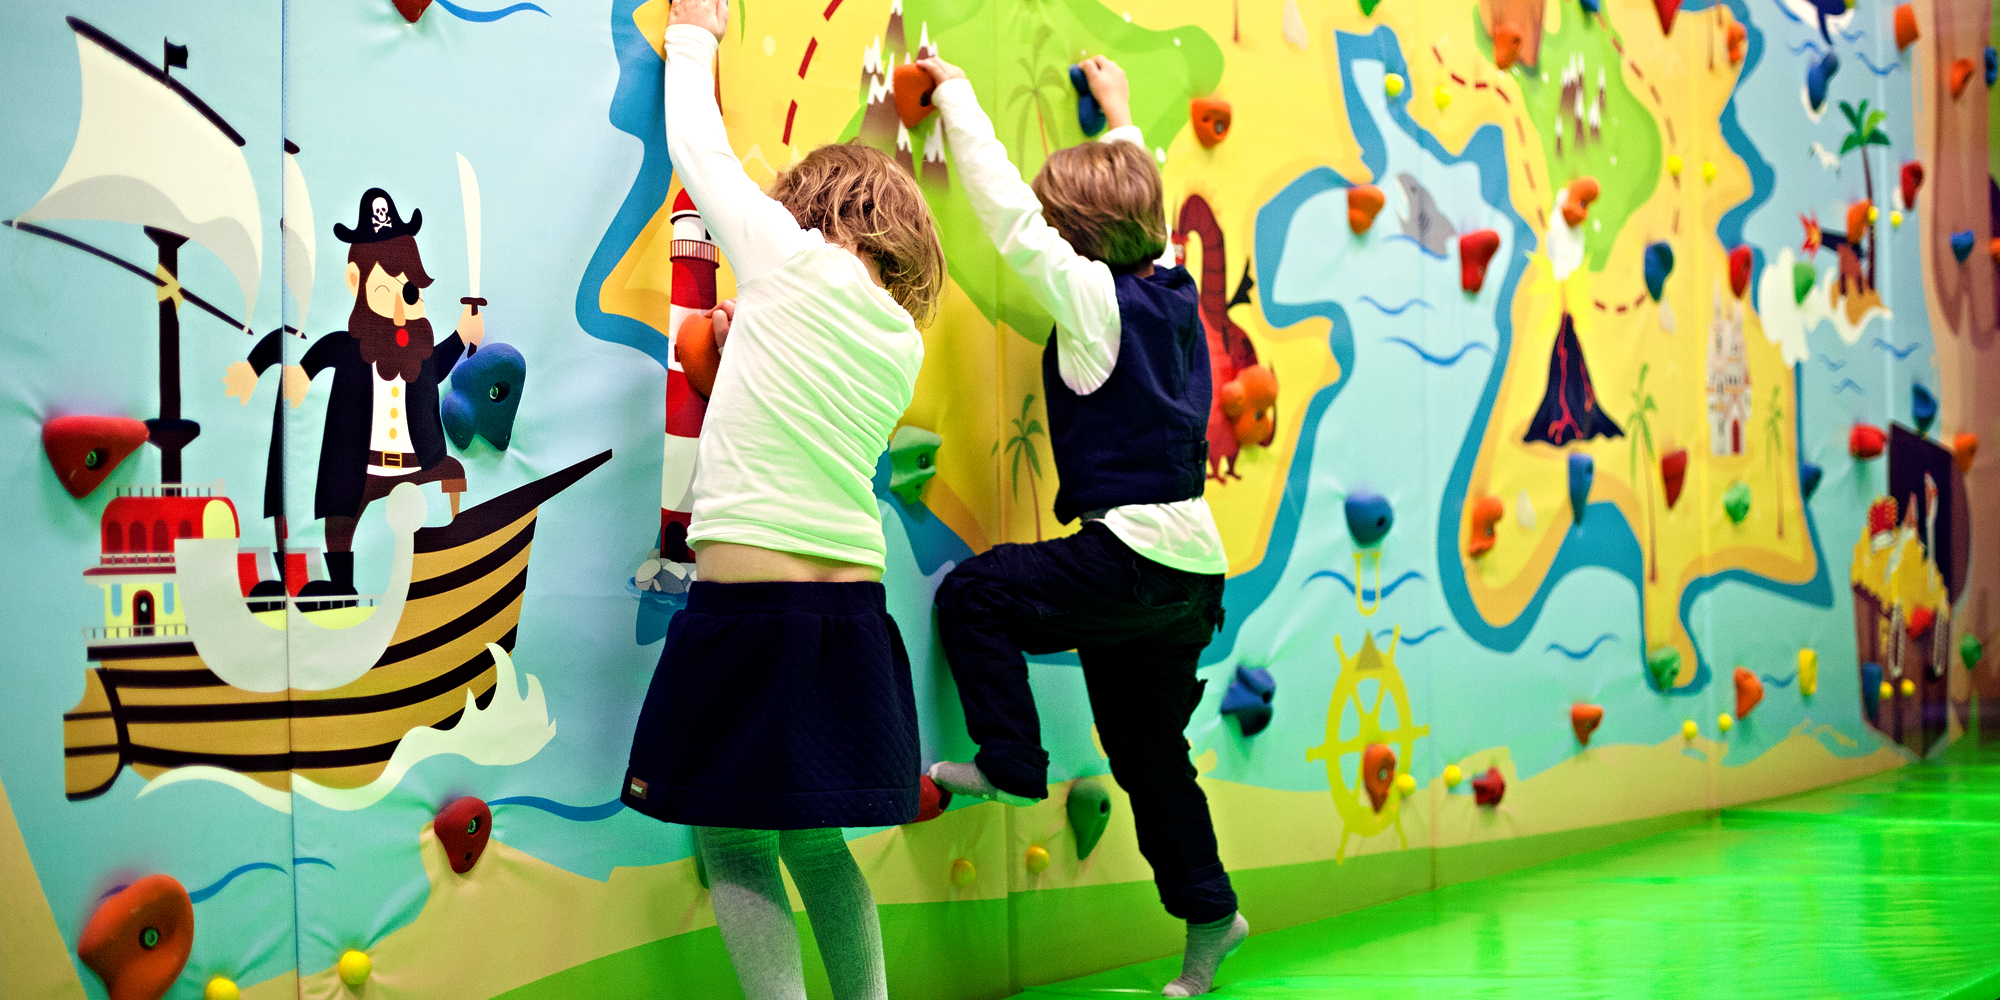 Lykkeland, a play centre in Steinkjer - kids on the climbing wall. Copyright: Lykkeland